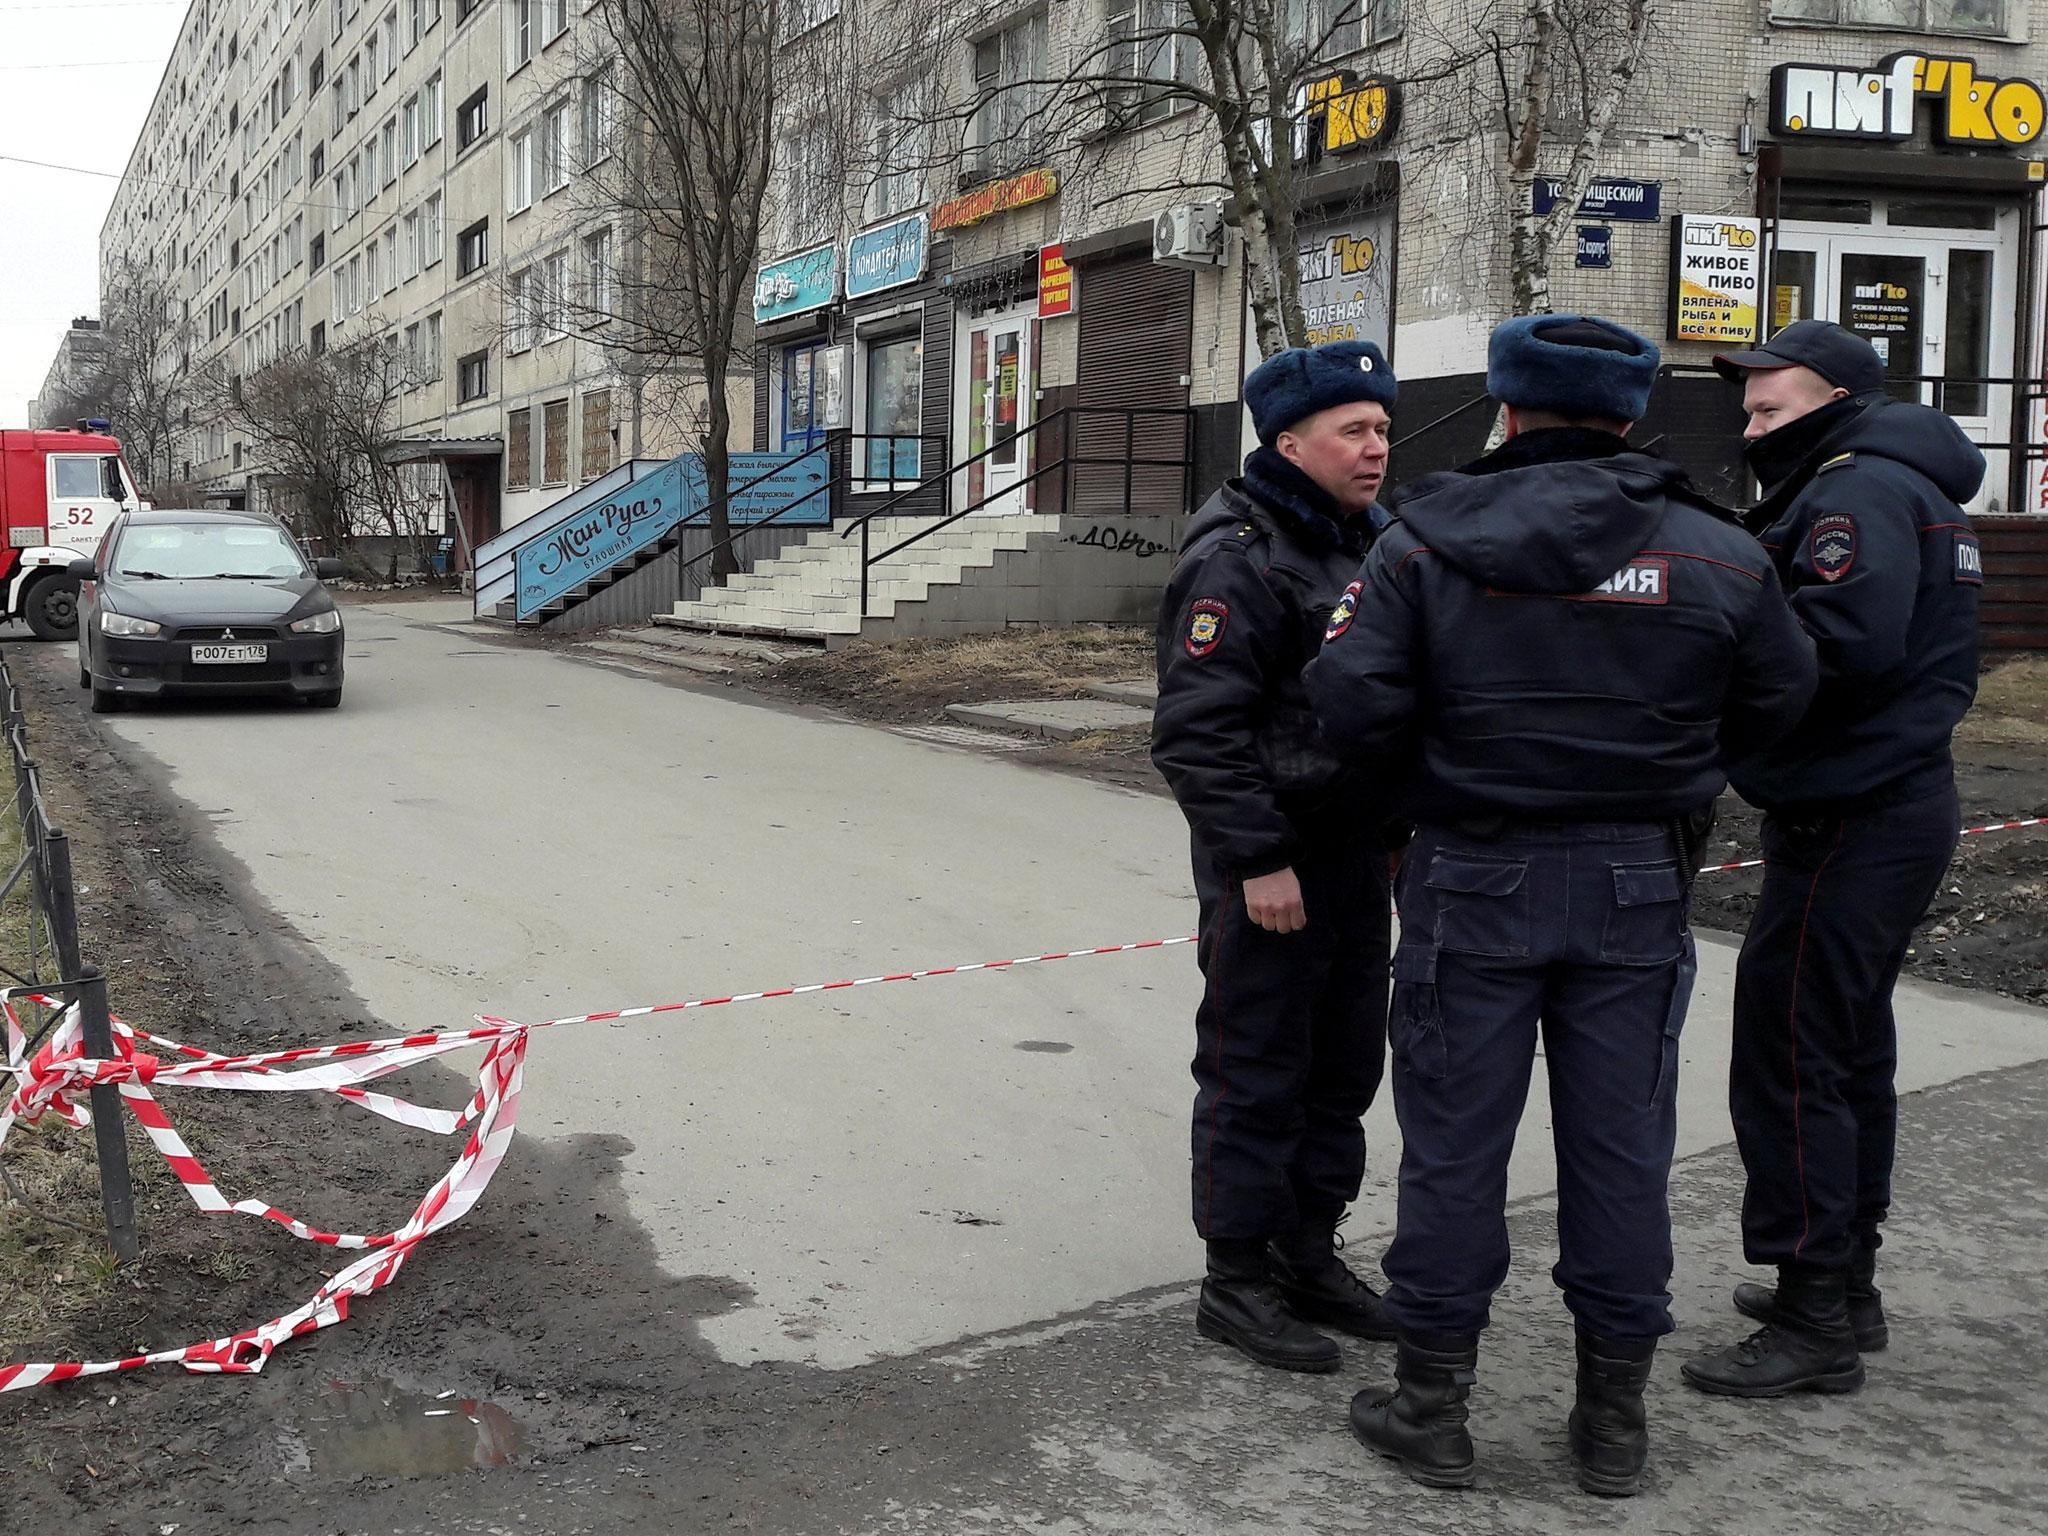 St Petersburg attacks - latest news, breaking stories and